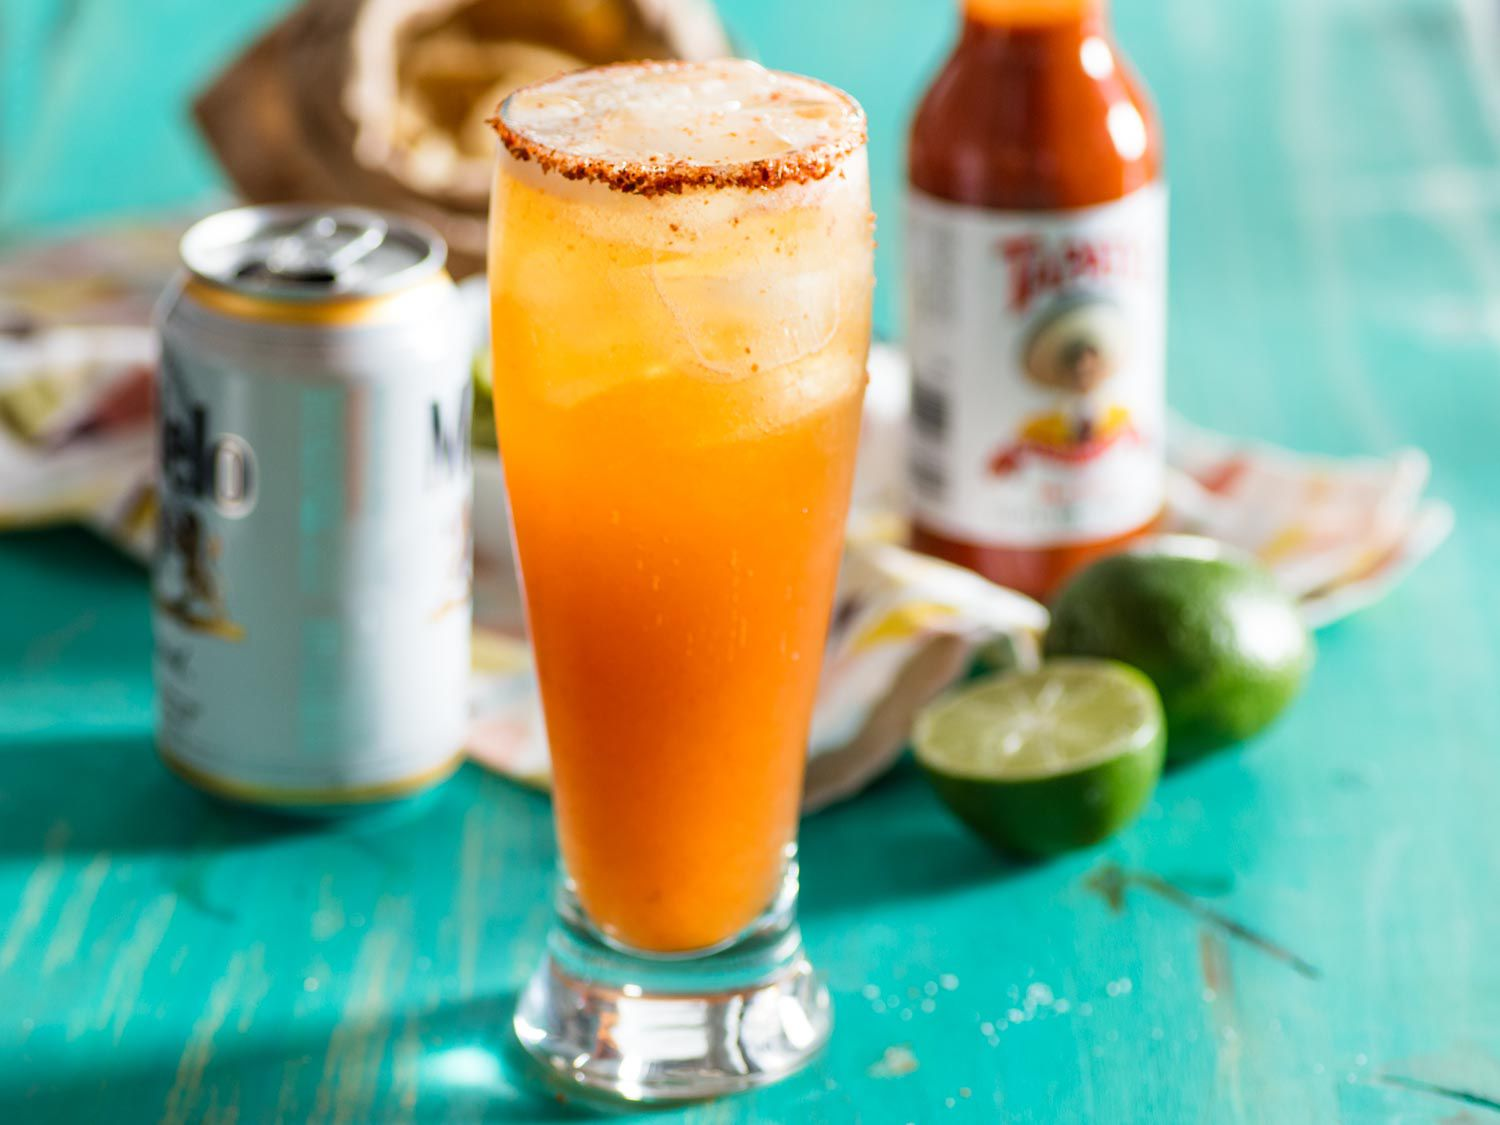 A finished michelada in a tall glass, with an open beer can, bottle of hot sauce, and halved lime in the background